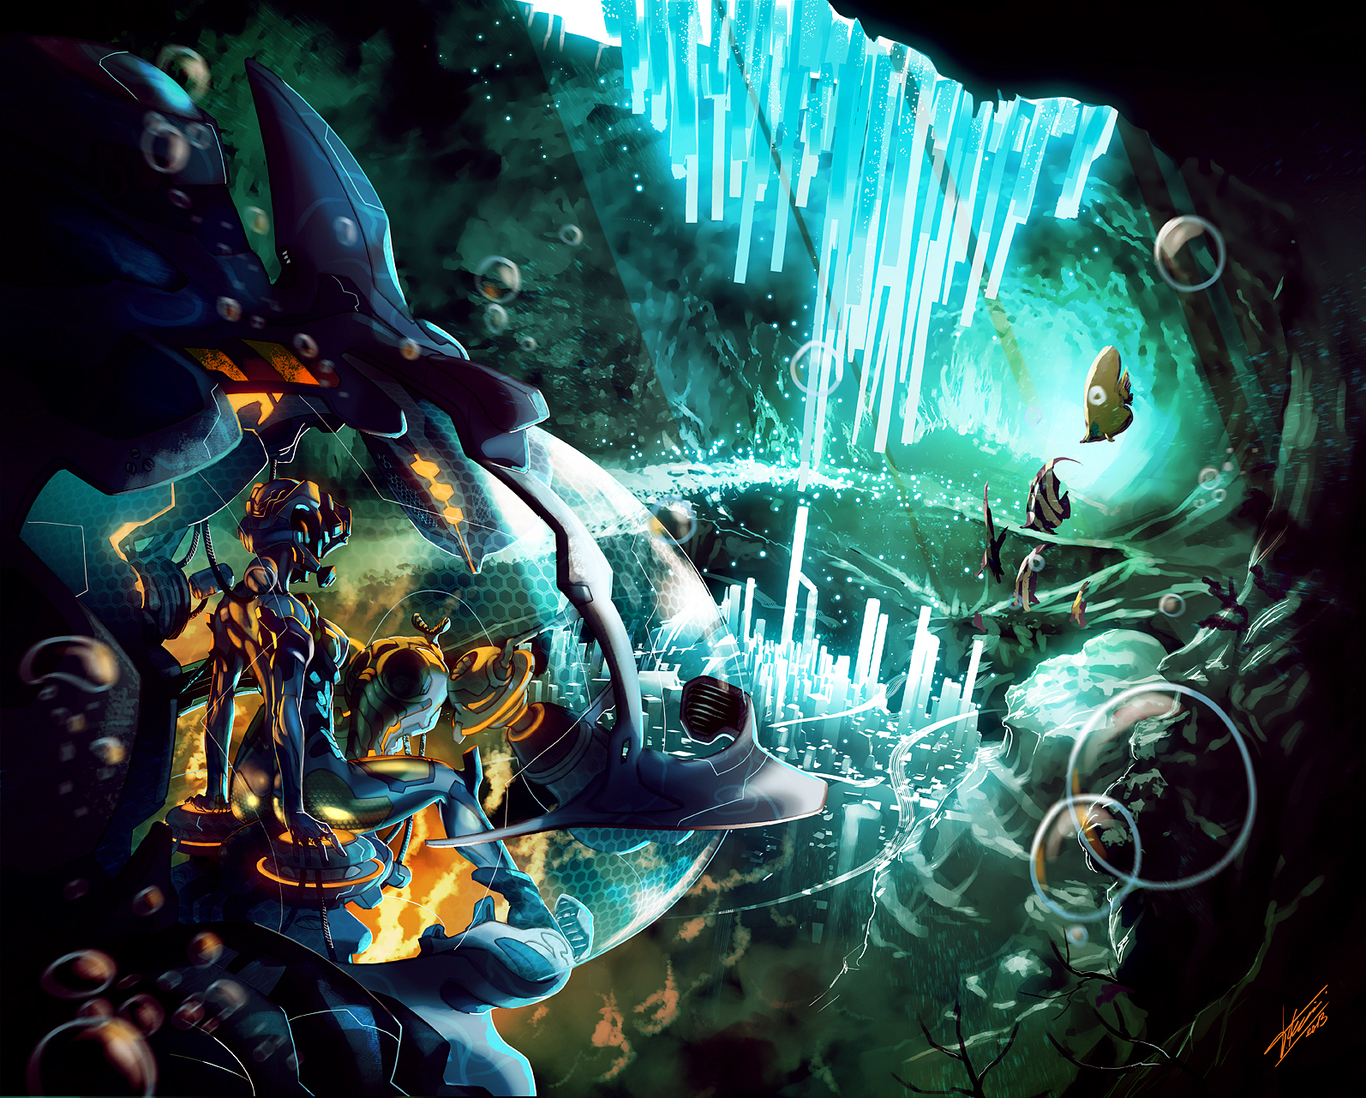 Zeroxenon777 a new cave 1 38478b32 zqaf